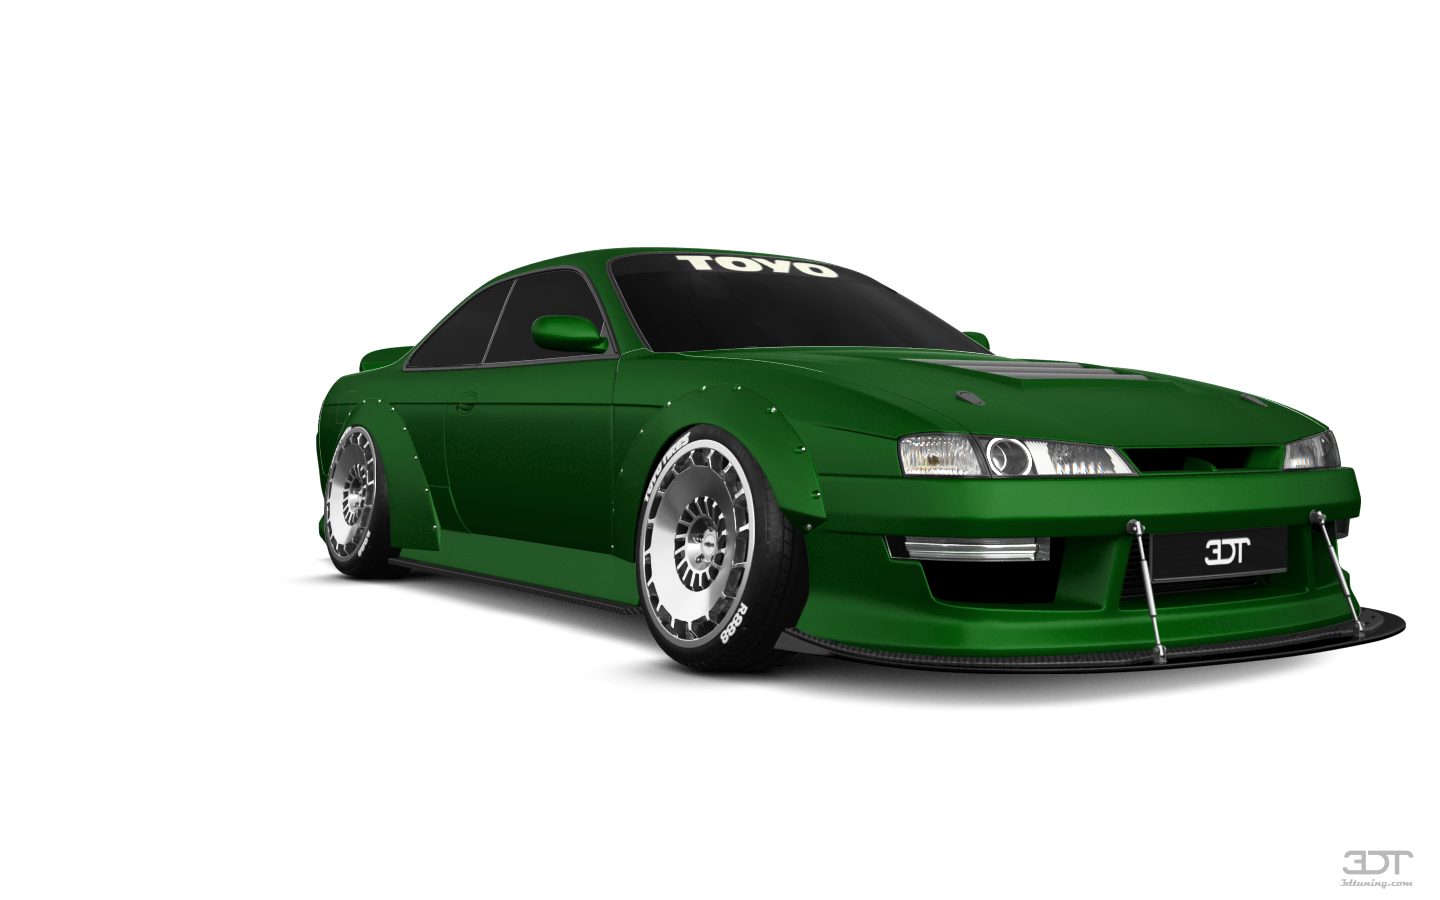 Nissan Silvia S14'95 by Stance-RO4DK1LL